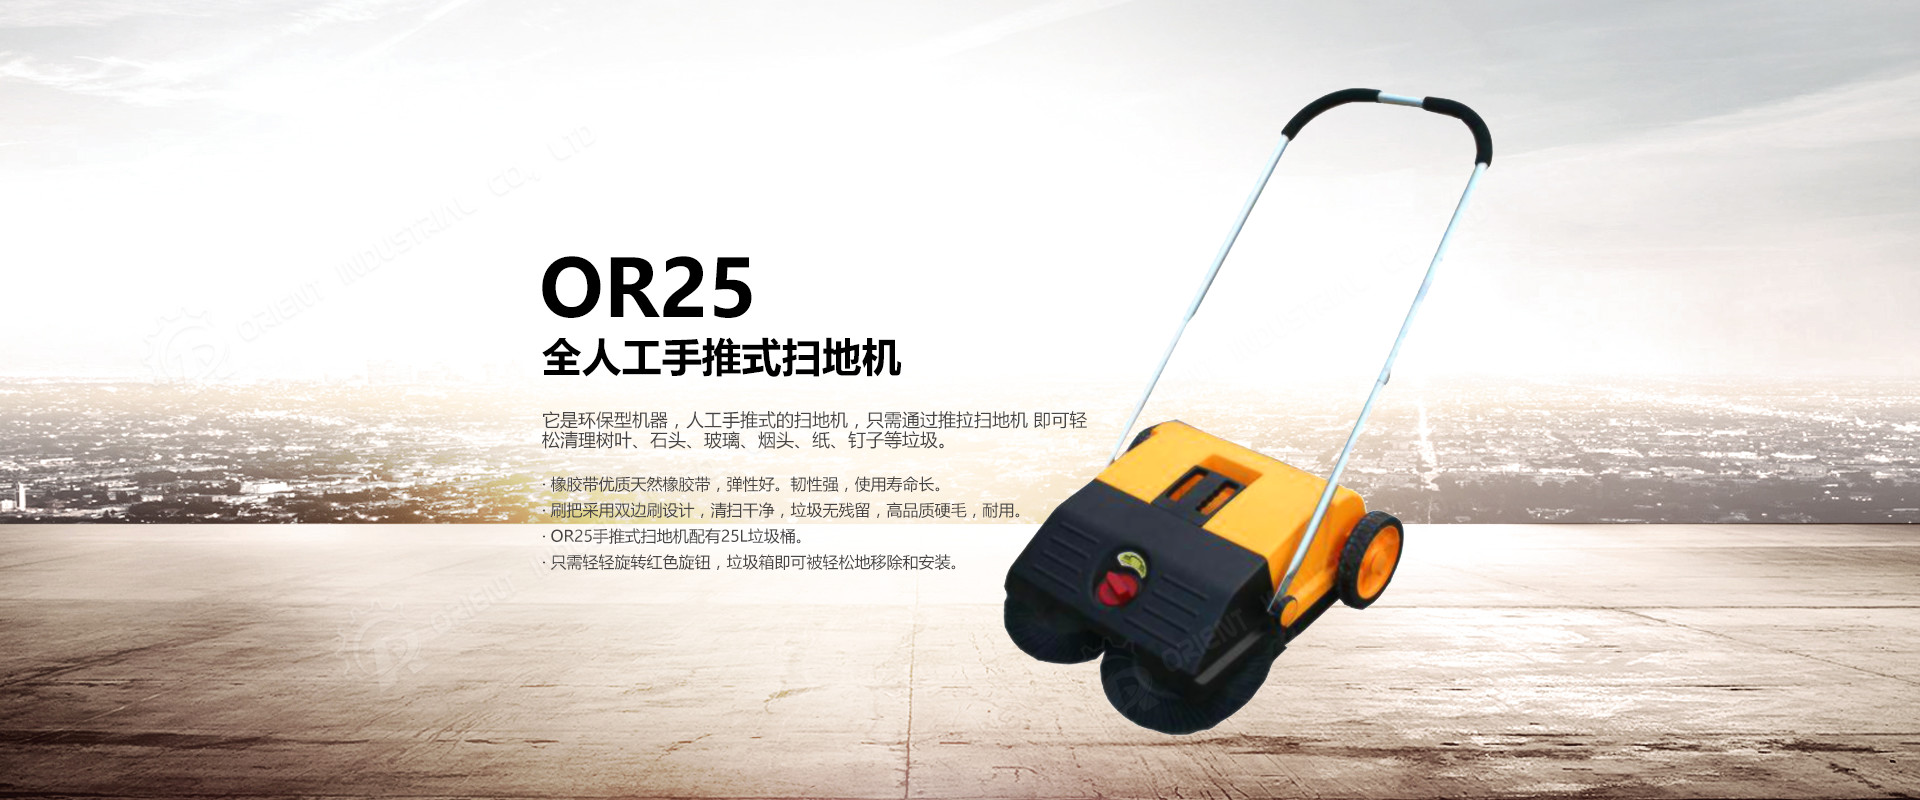 Manual Sweeper OR25